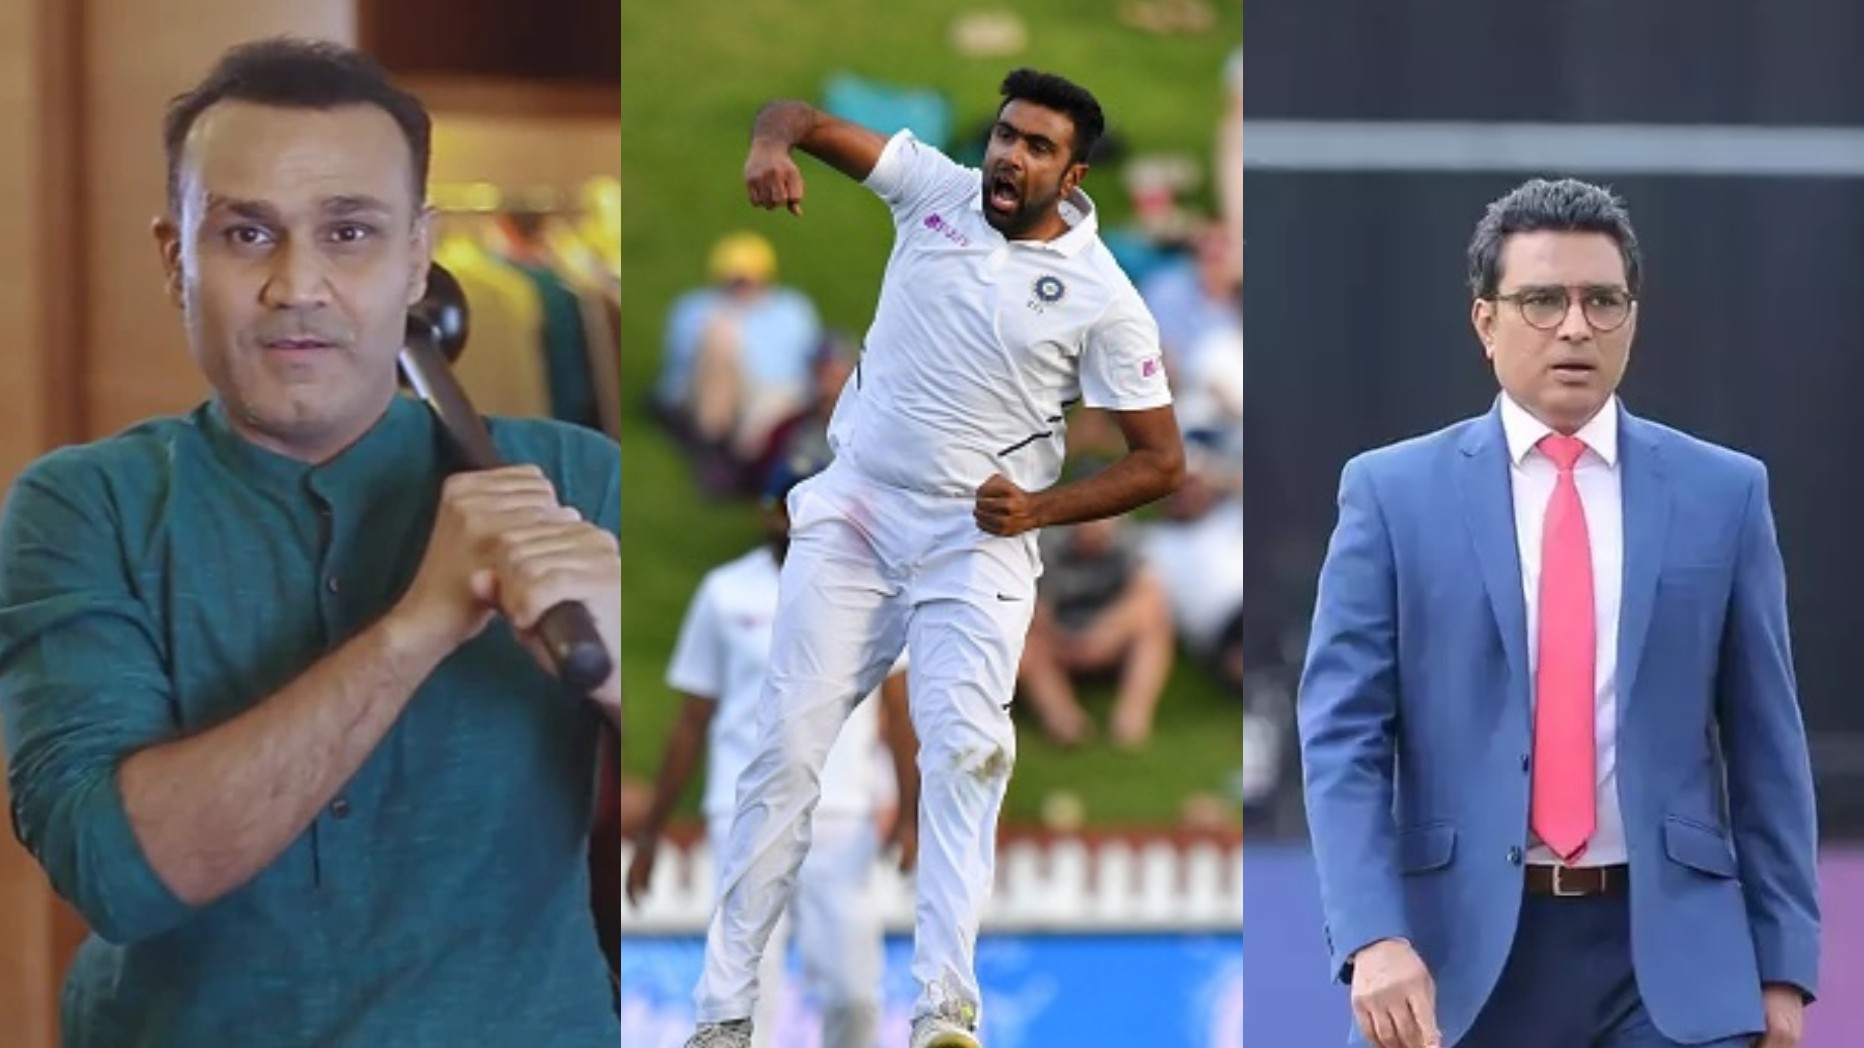 AUS v IND 2020-21: Cricket fraternity lauds Indian bowlers as Australia restricted to 191; leads by 62 runs